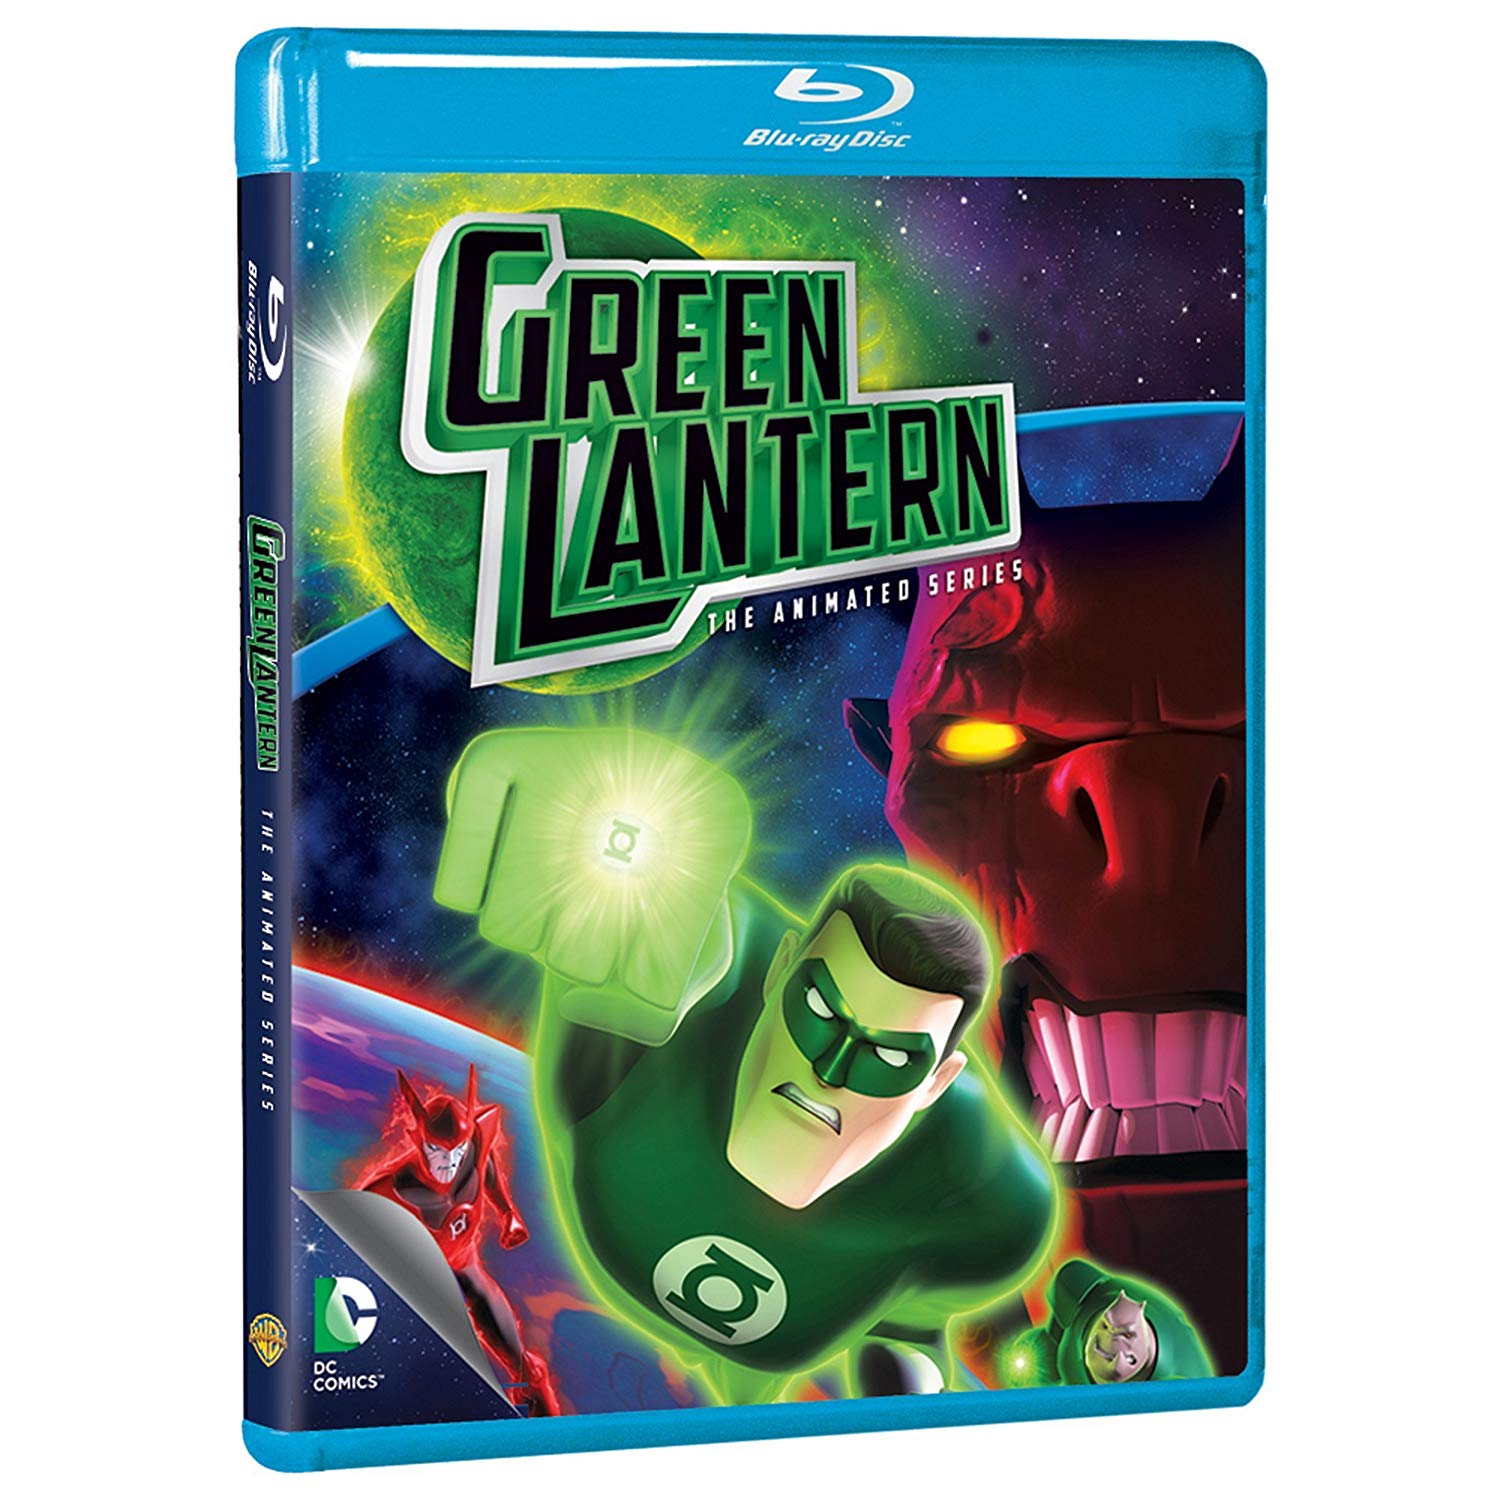 Green Lantern: The Animated Series by Warner Brothers